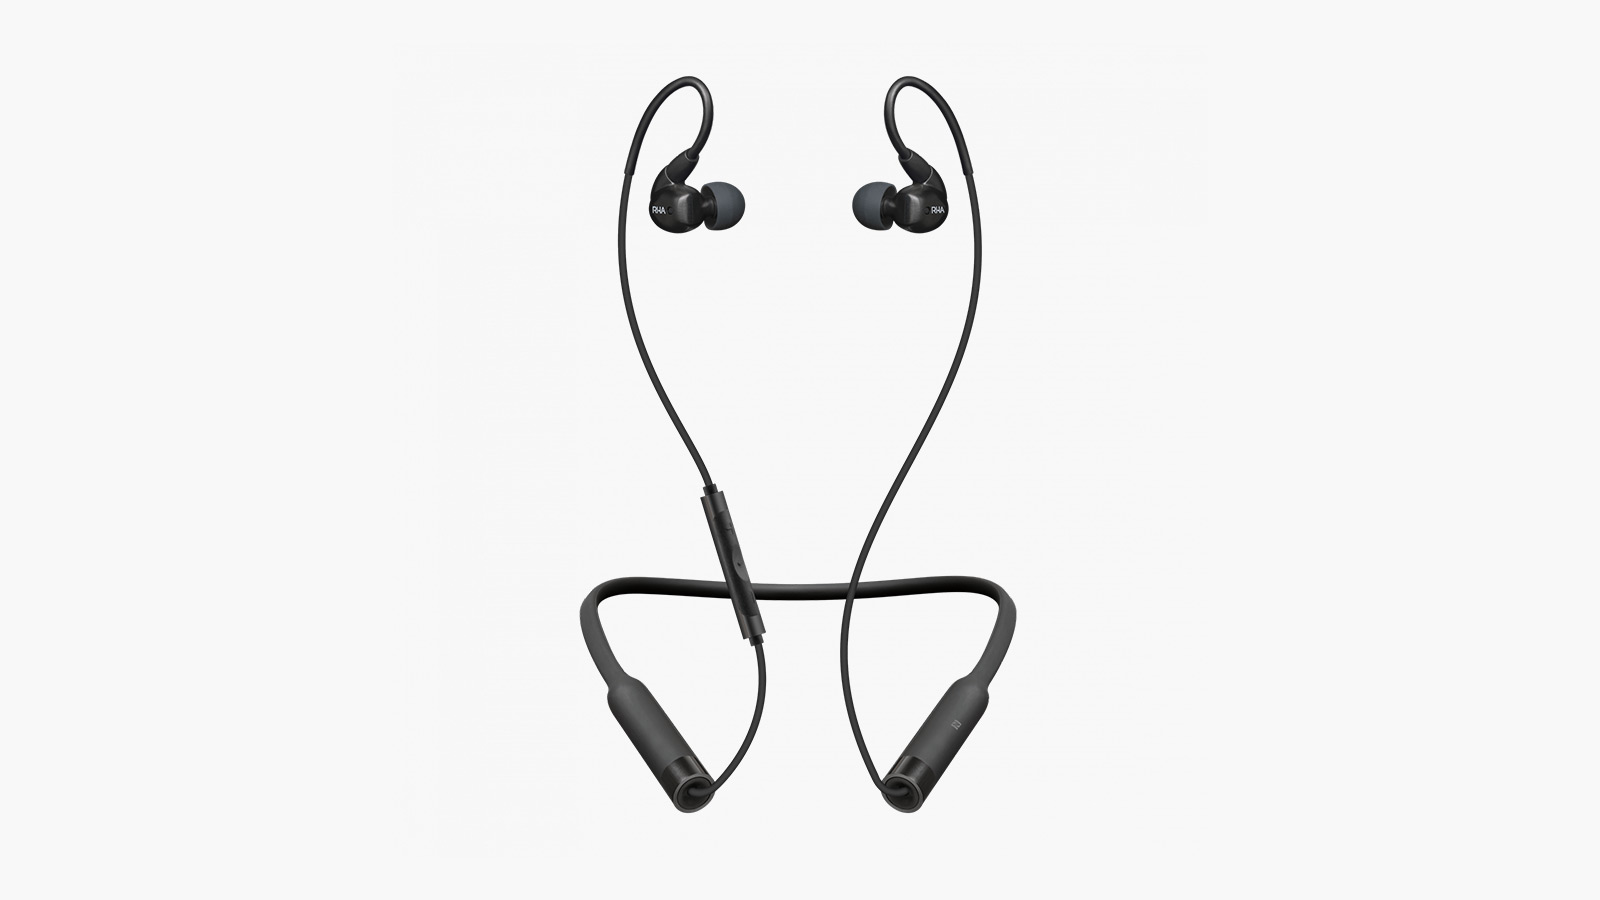 Rha T20 Wireless In Ear Headphones